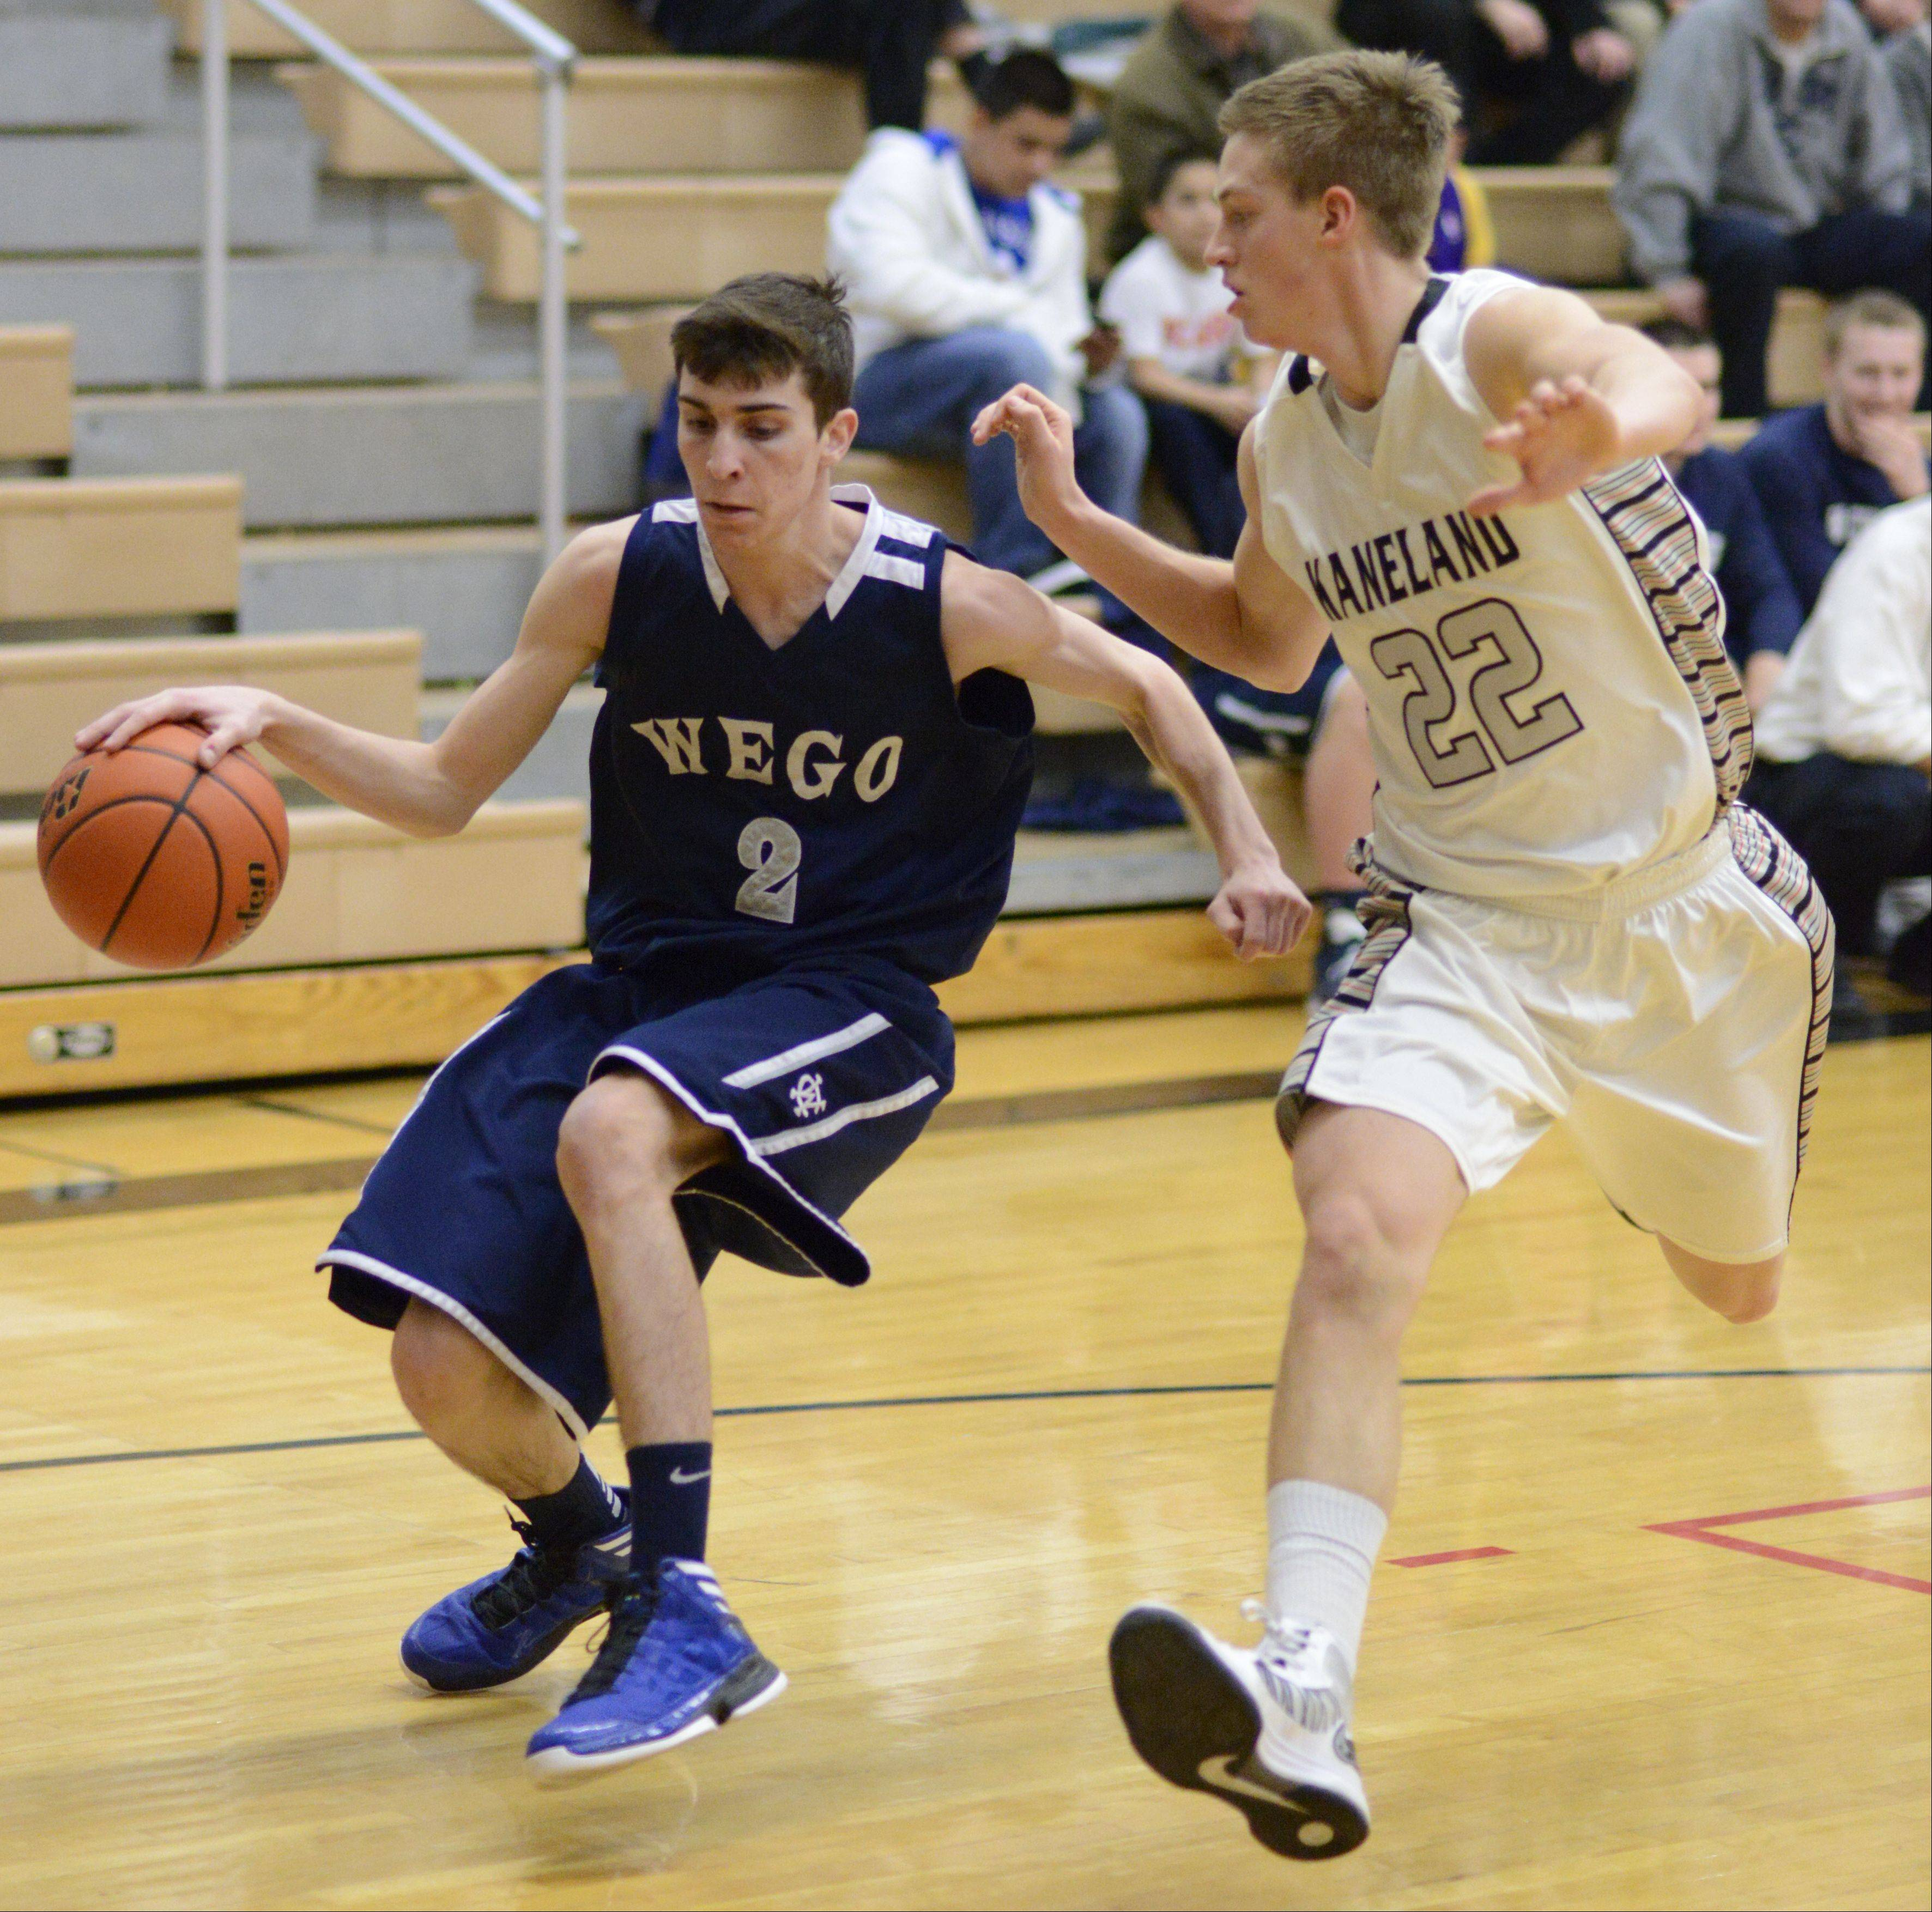 Images: West Chicago vs. Kaneland, boys basketball